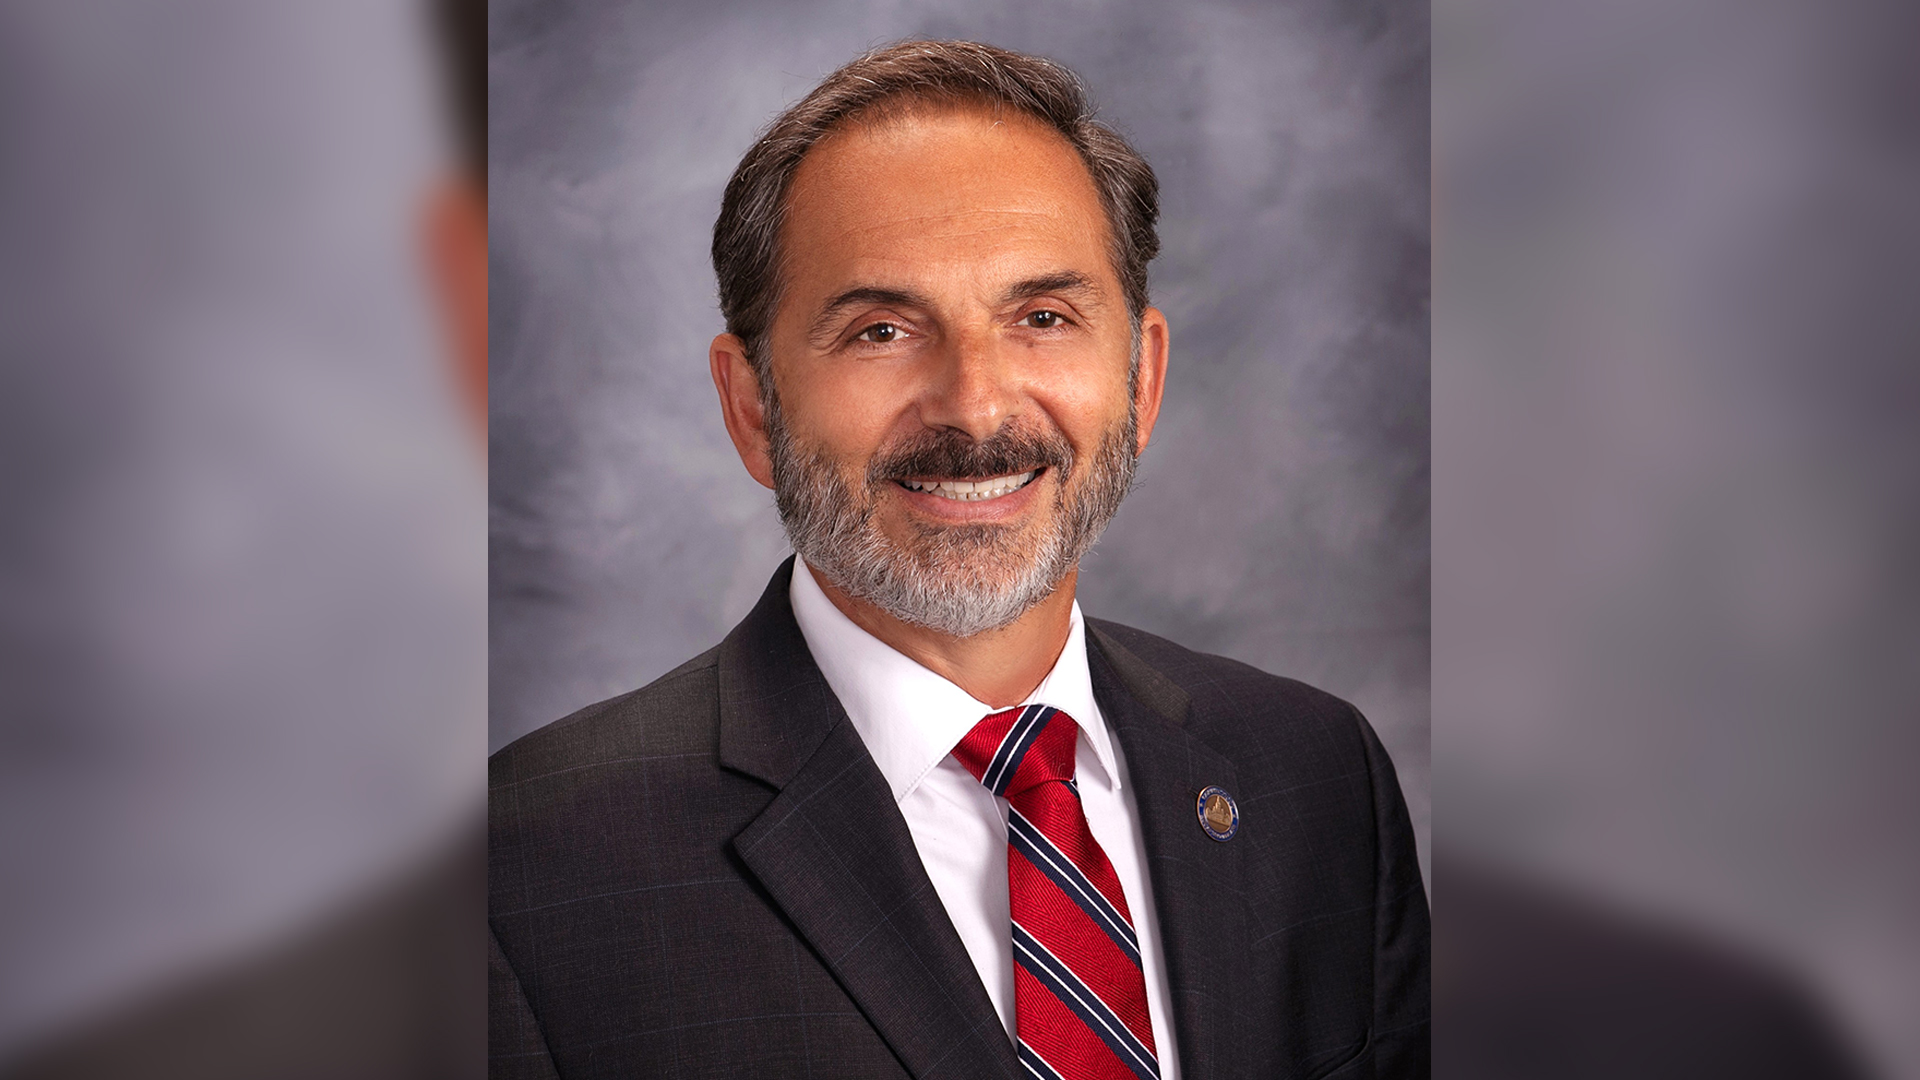 Rep. Yaccarino Applauds Passage of Bill Expanding Workers' Compensation Benefits to EMS Professionals